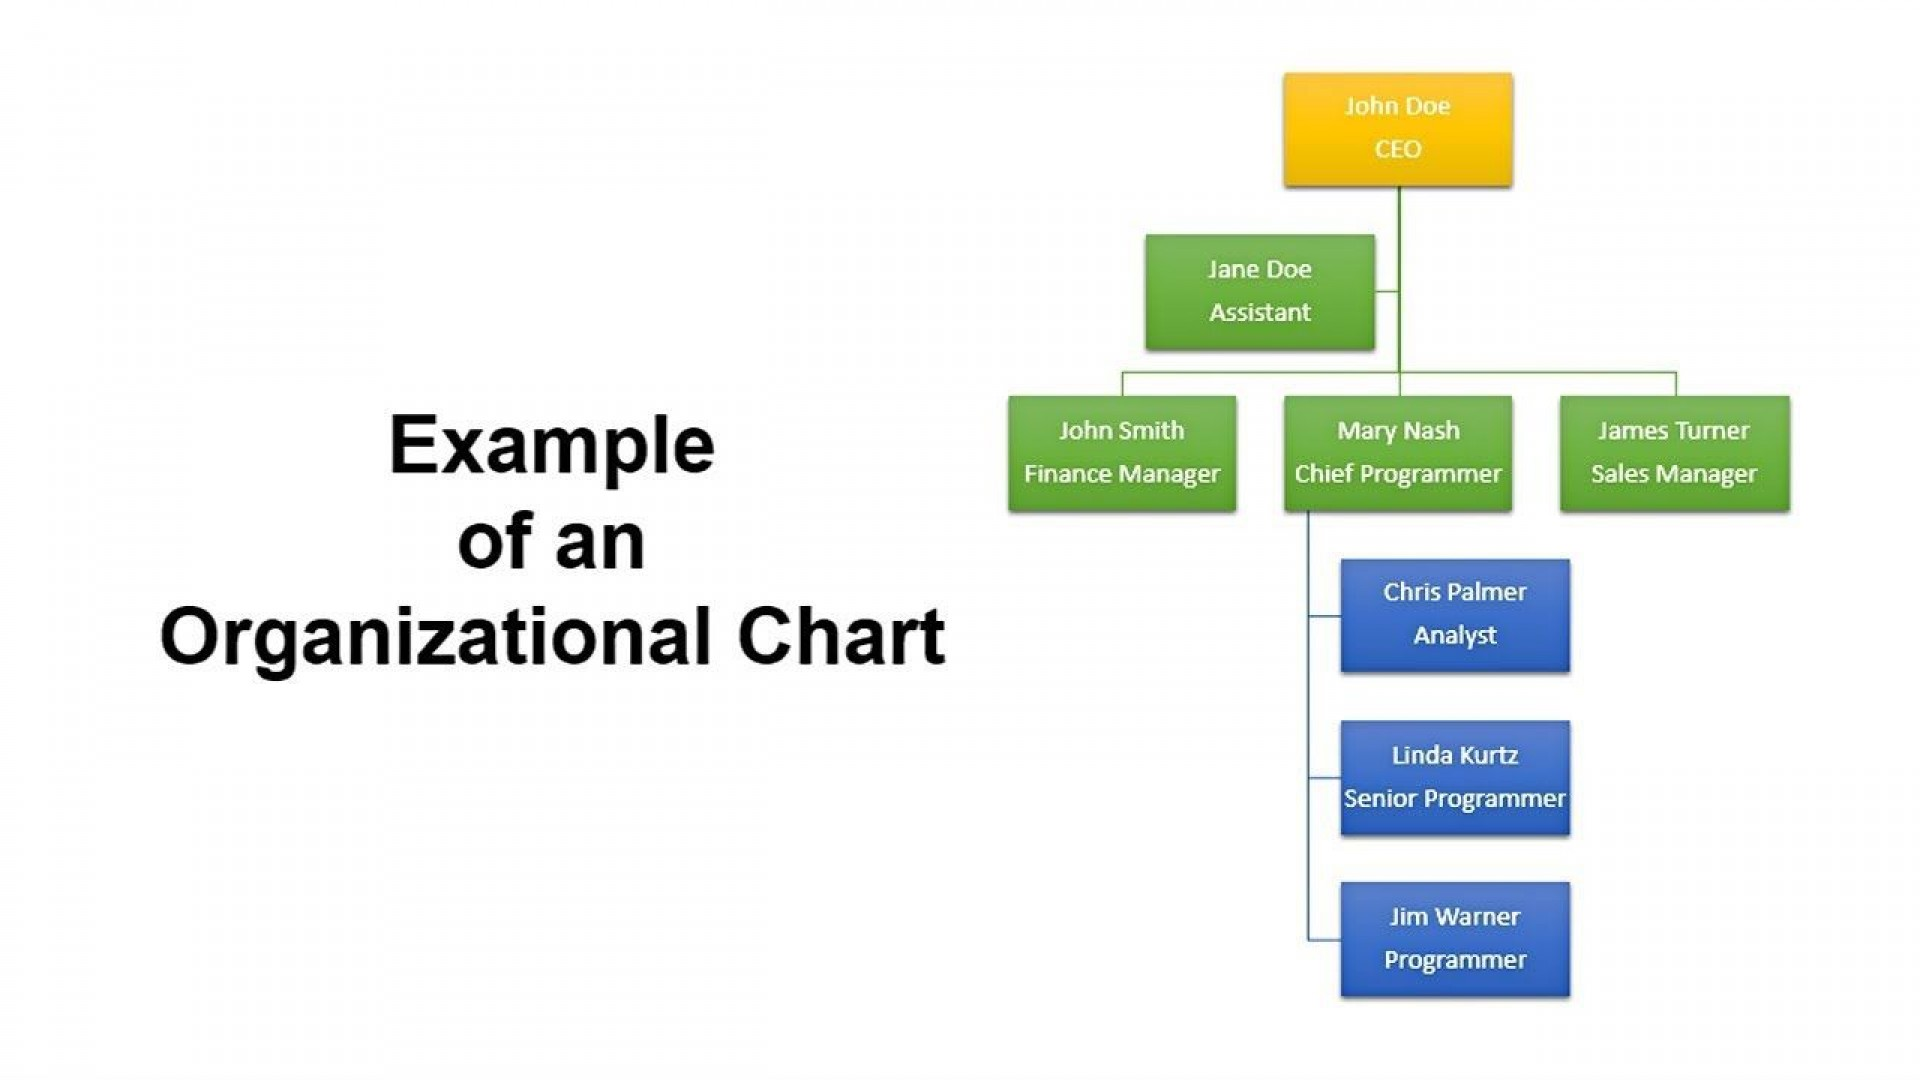 005 Archaicawful Organizational Chart In Microsoft Powerpoint 2010 High Resolution 1920